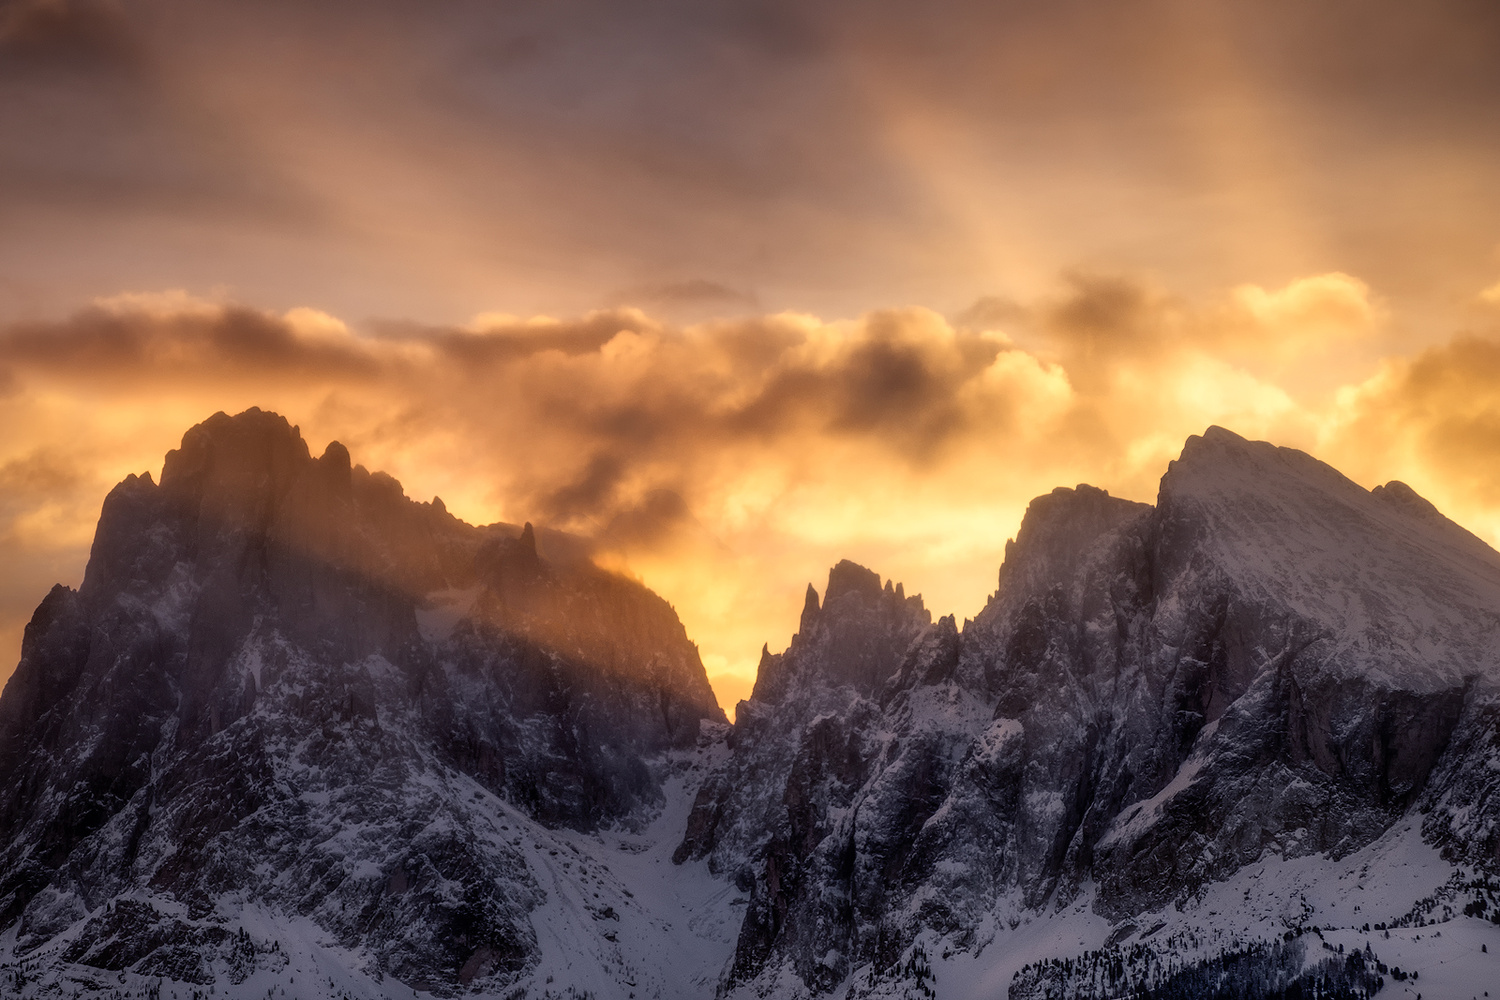 Morning Dawn by Andrea Re Depaolini